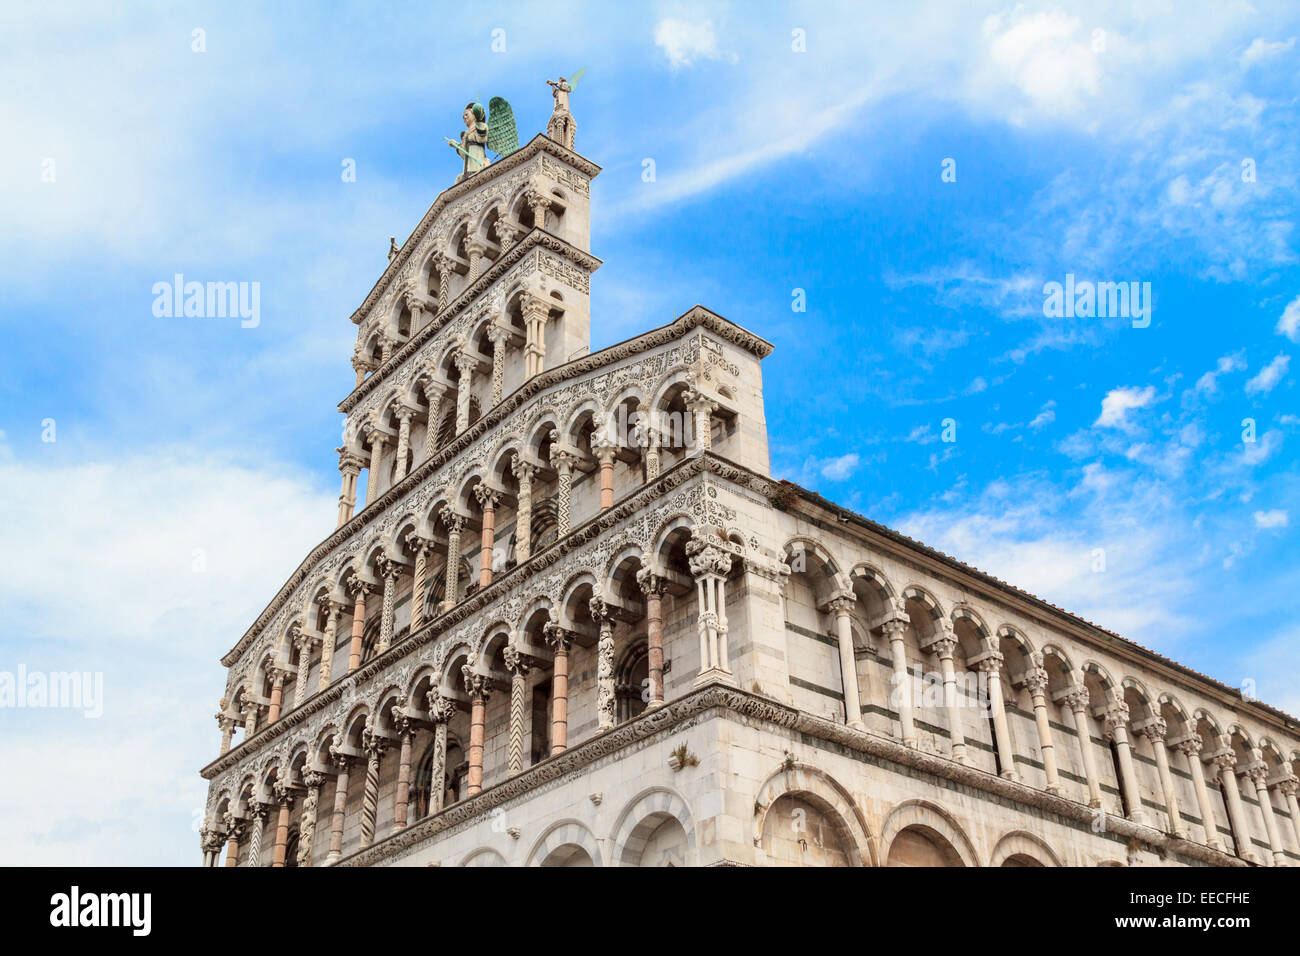 A detail of the dome of Lucca, Tuscany - Stock Image